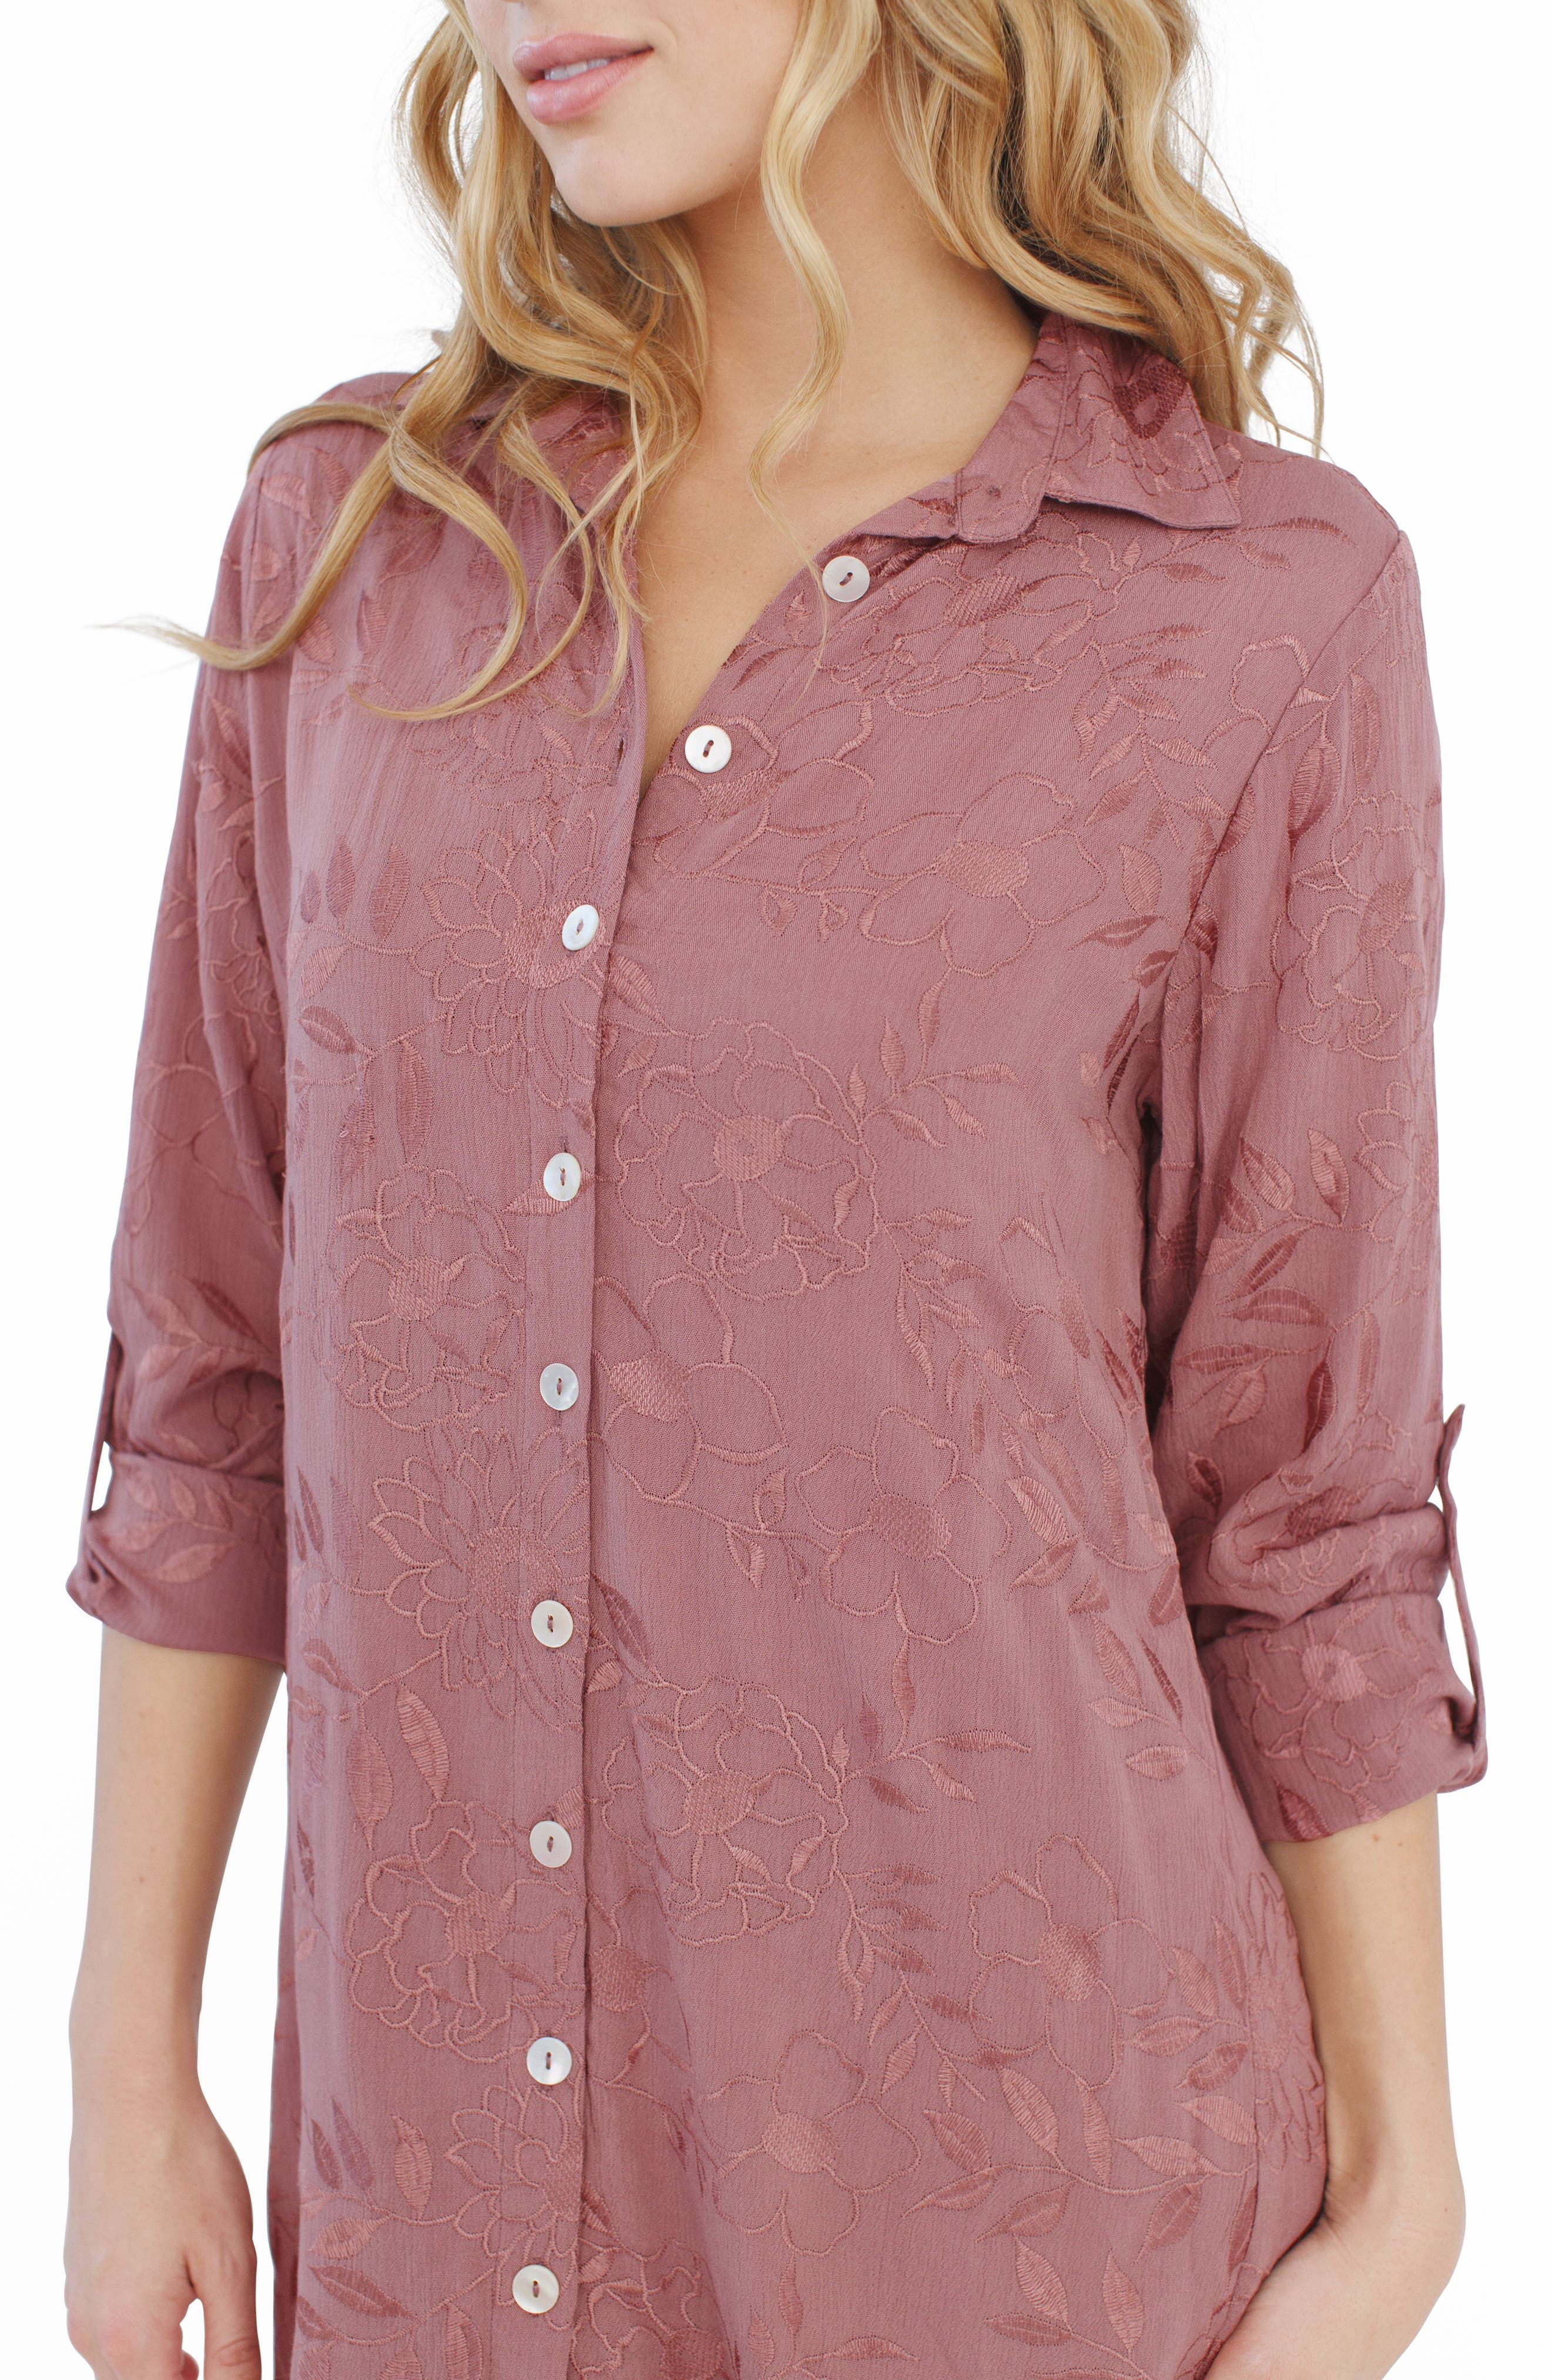 Floral Embroidered Nightshirt,                             Alternate thumbnail 3, color,                             510